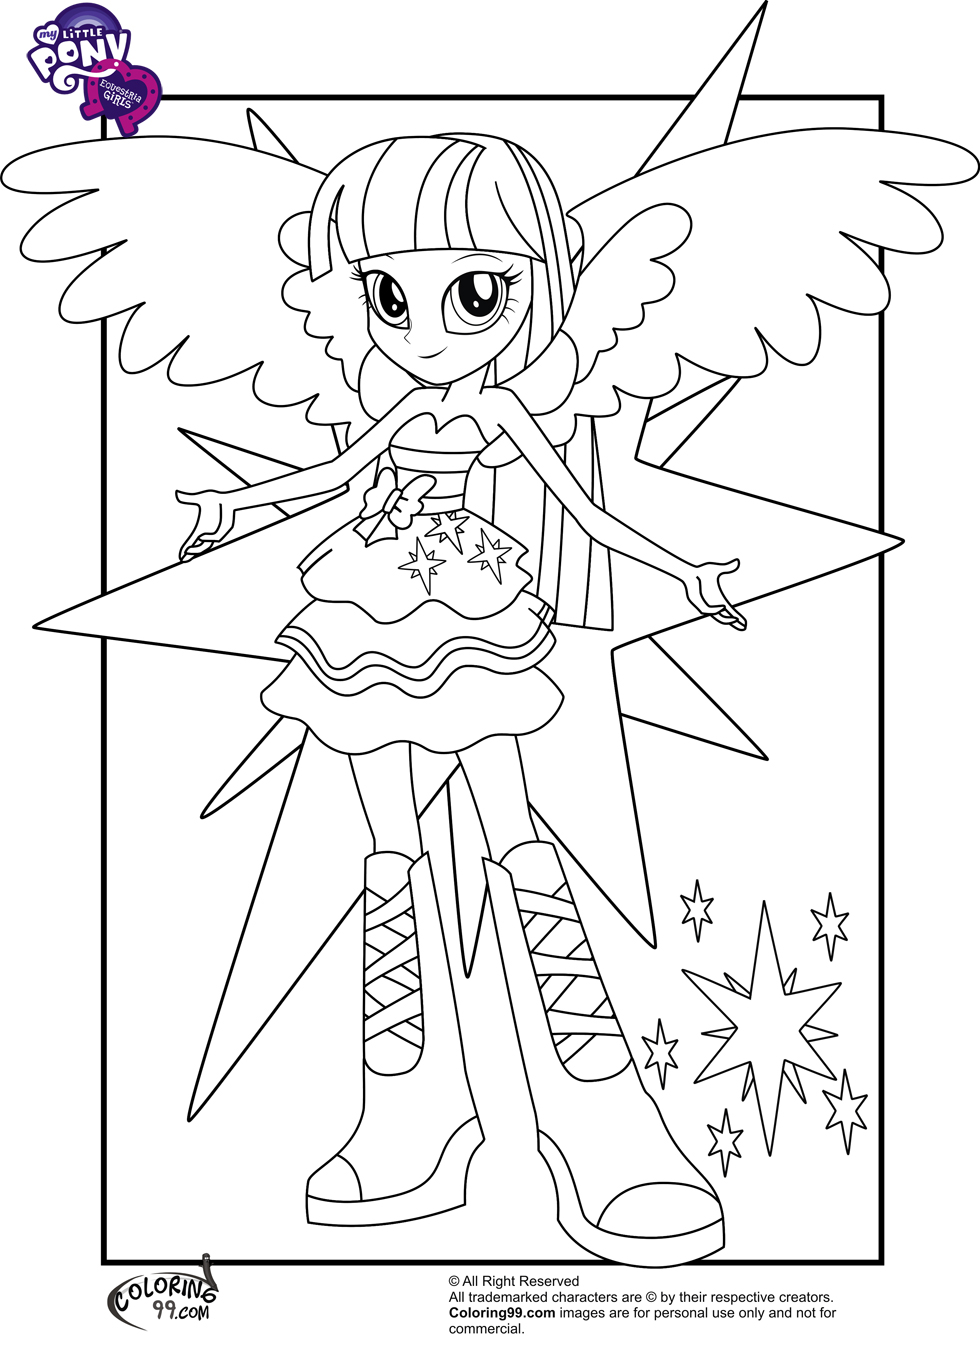 y8 coloring pages - photo #35